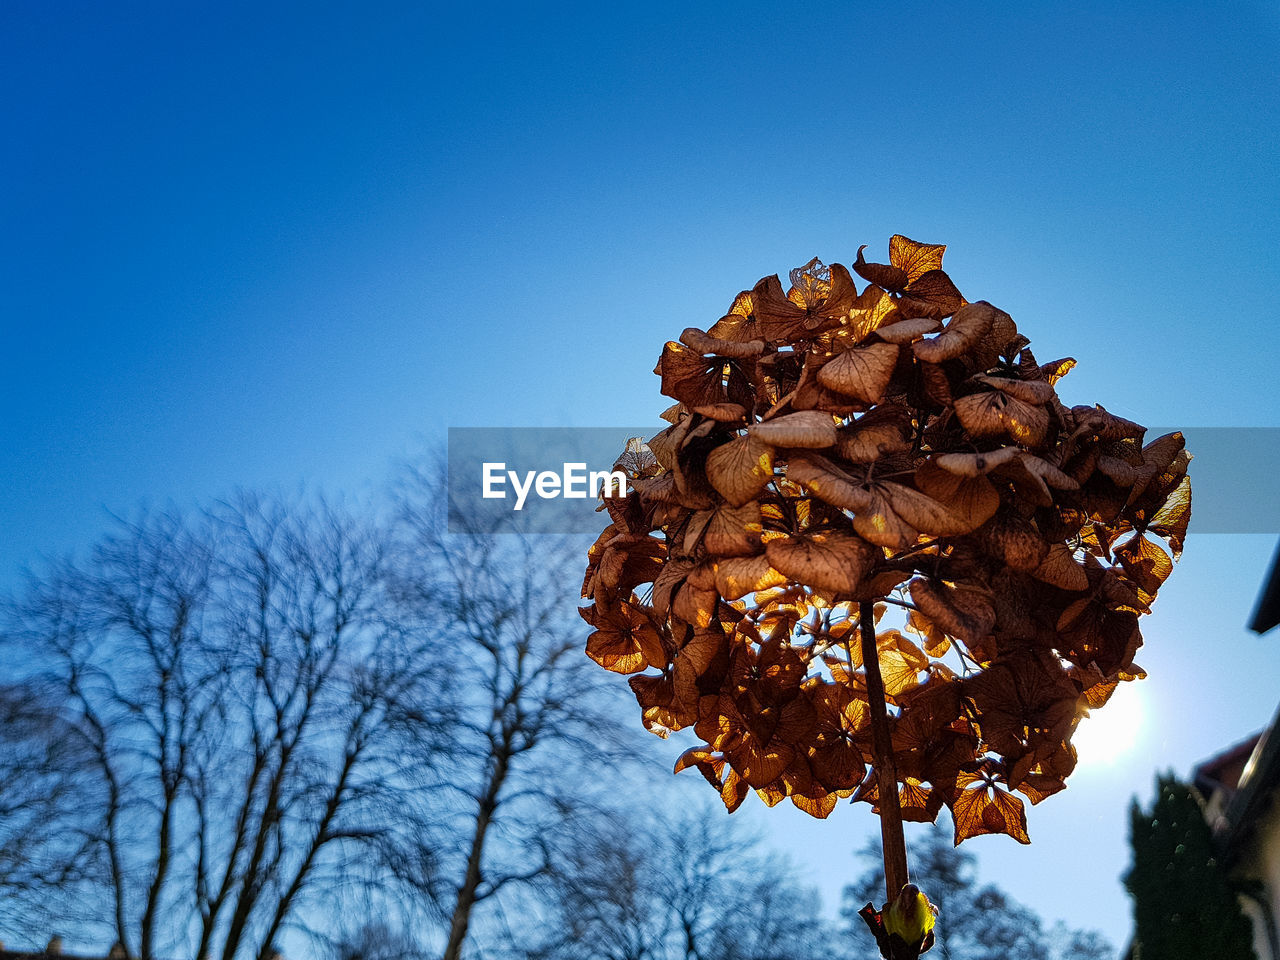 sky, plant, tree, low angle view, nature, clear sky, blue, beauty in nature, no people, focus on foreground, growth, flower, flowering plant, day, freshness, fragility, close-up, copy space, dry, outdoors, flower head, wilted plant, dried